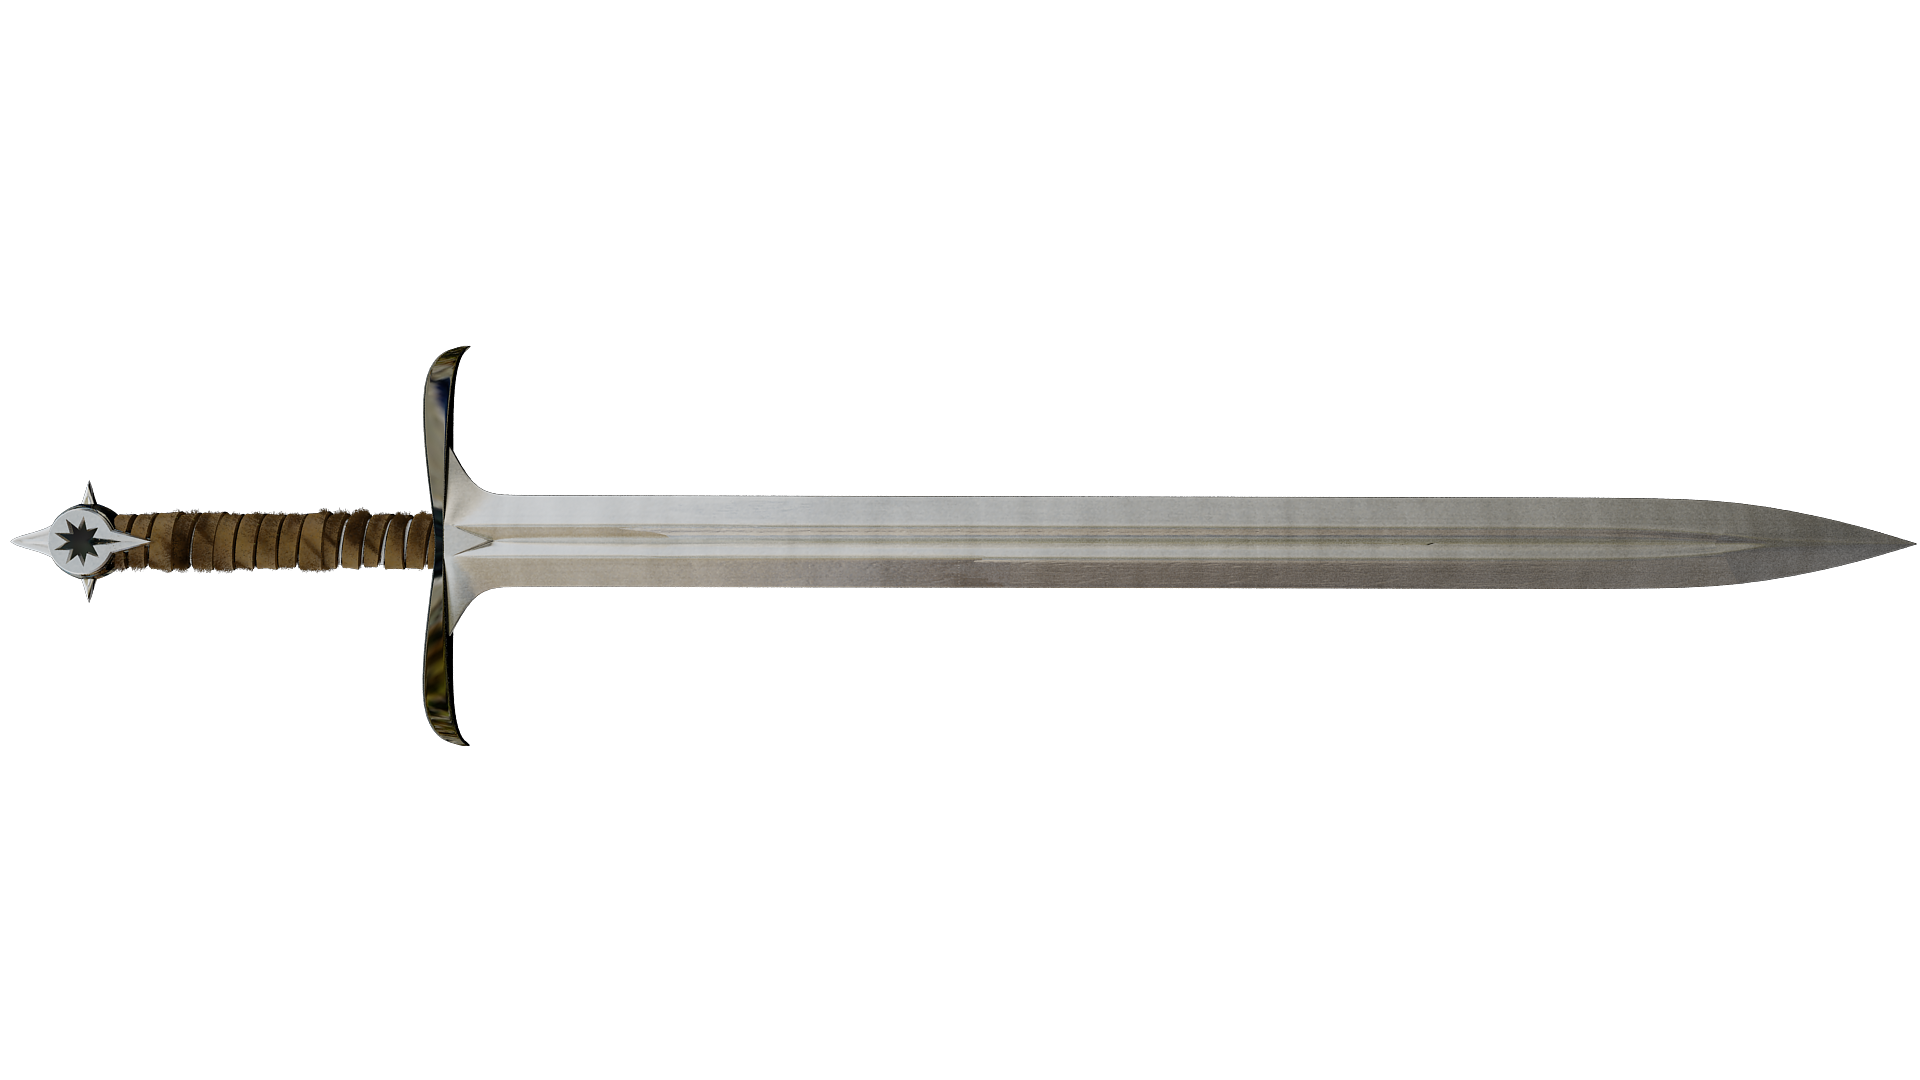 [LIBRE]Réunion : Offensive contre les campement Perracks Sword-hd-png-sword-png-image-1920